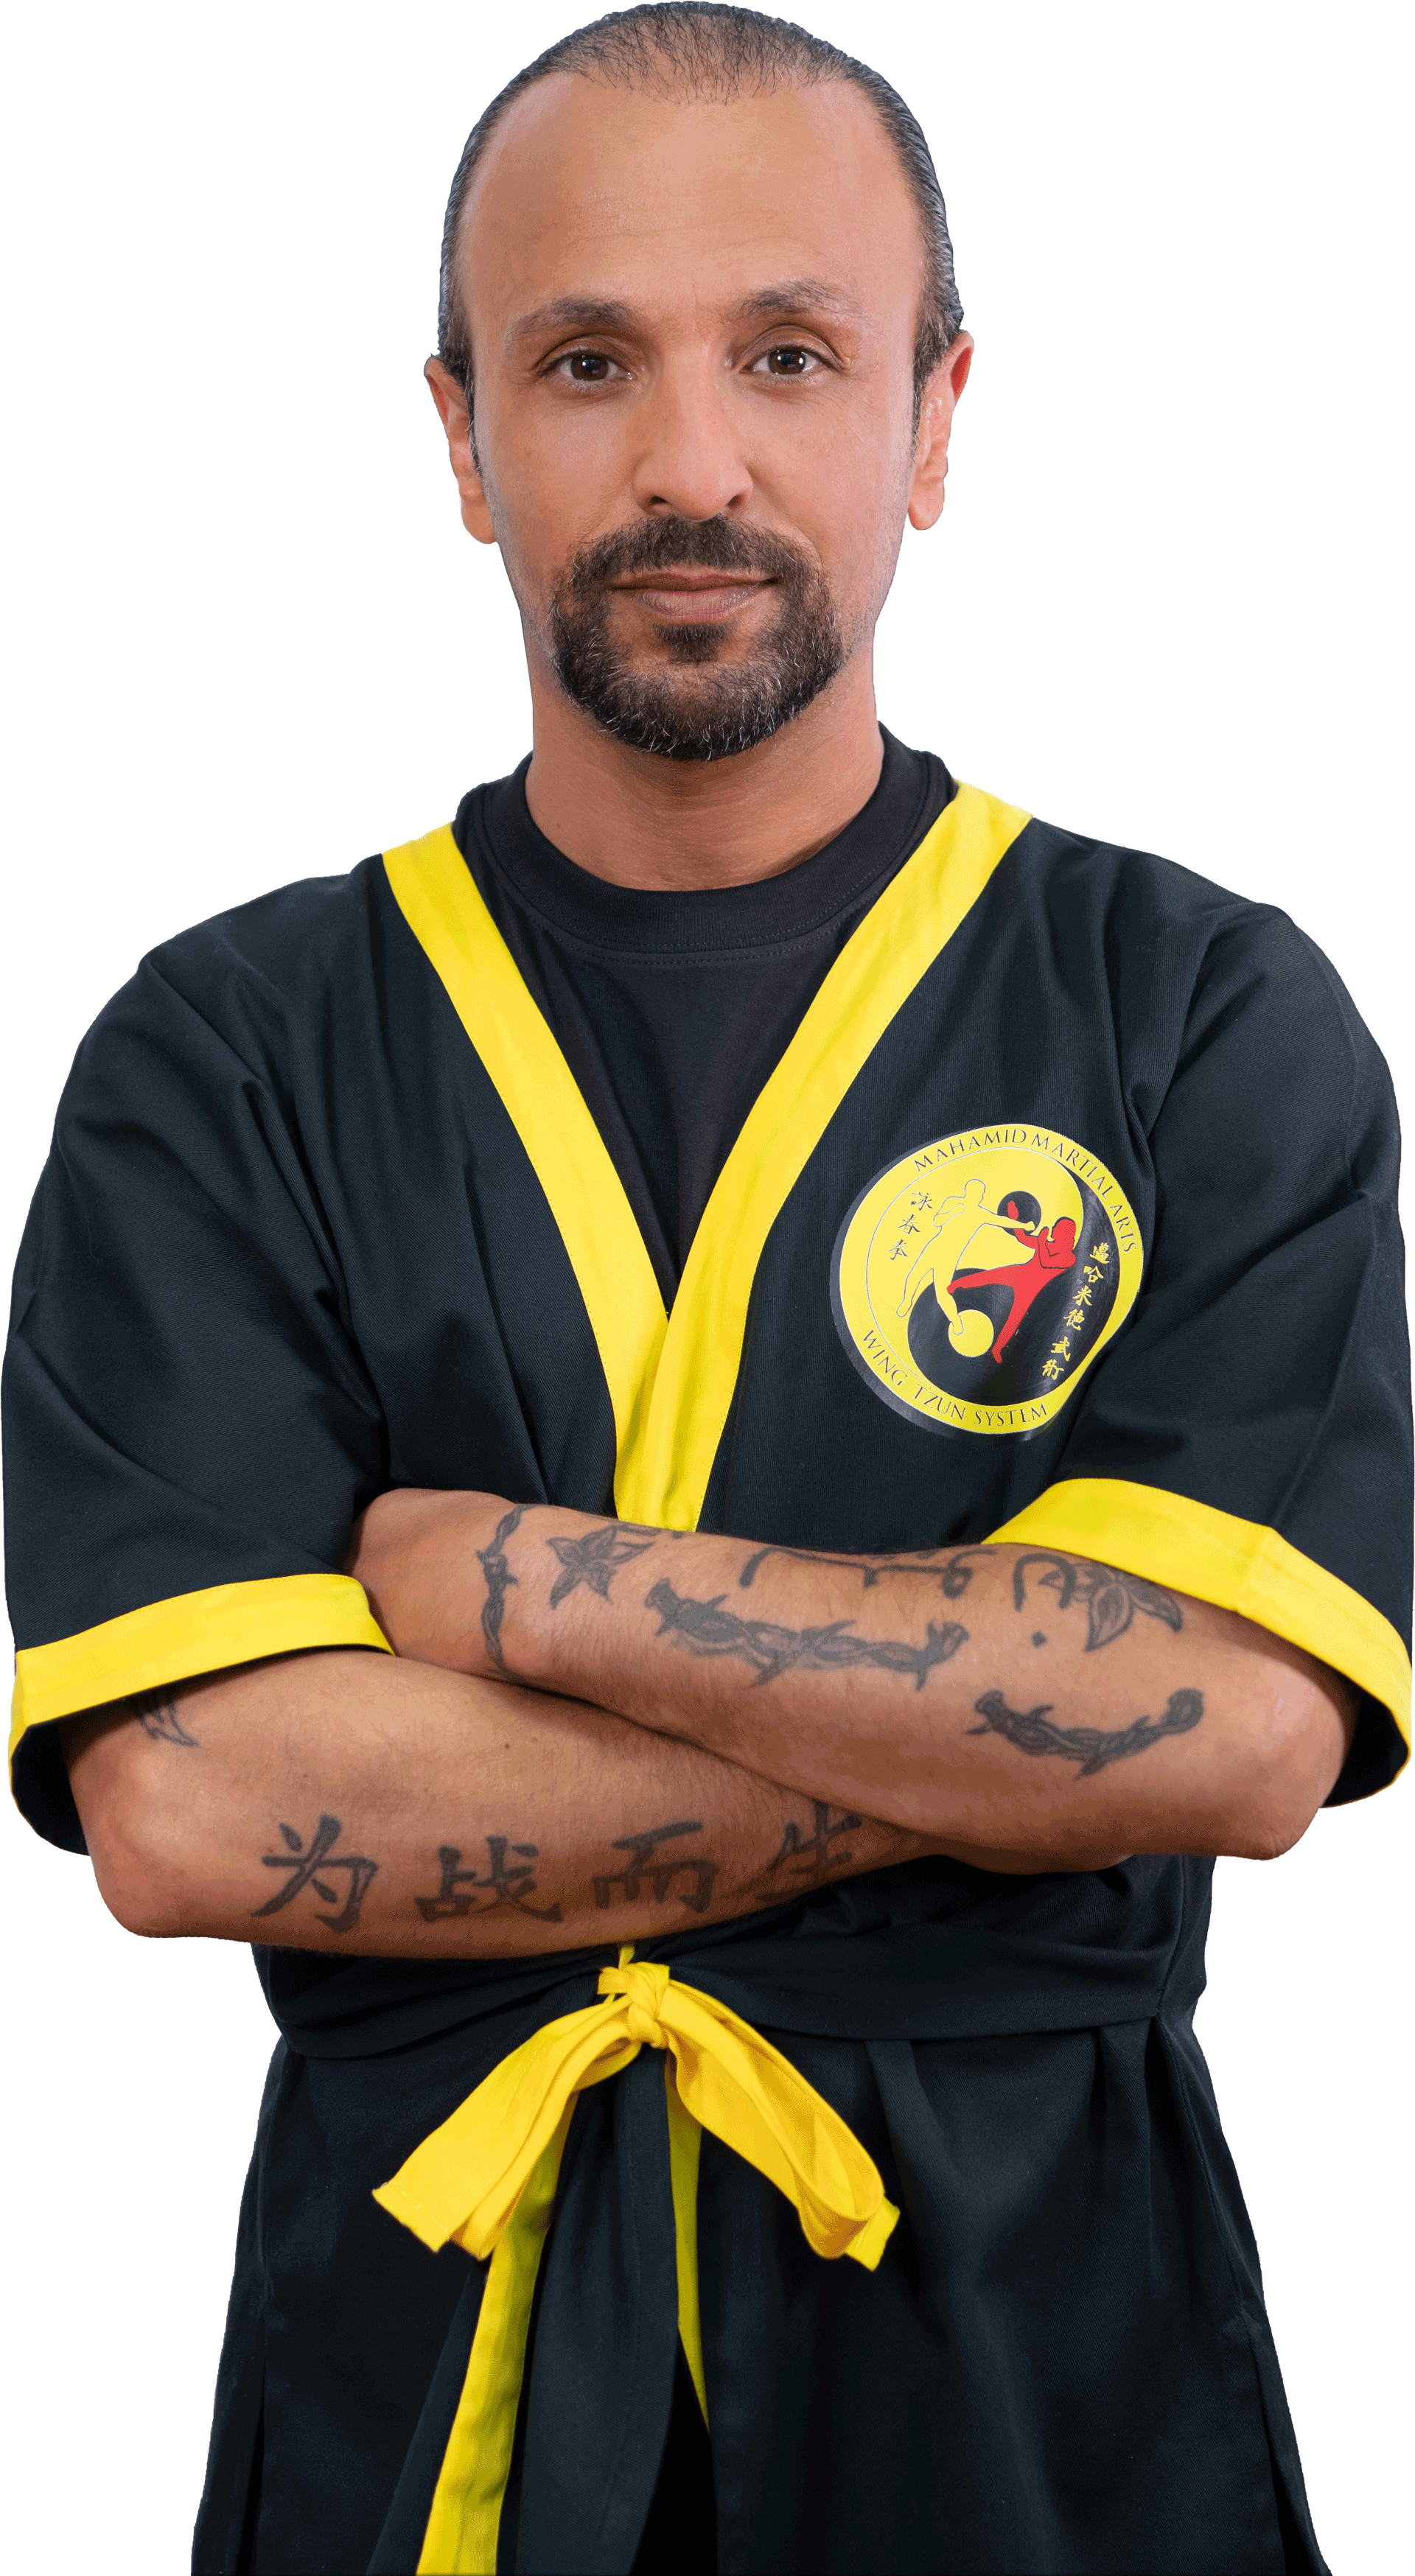 //mahamid-martial-arts.de/wp-content/uploads/2019/05/DSC09589.png